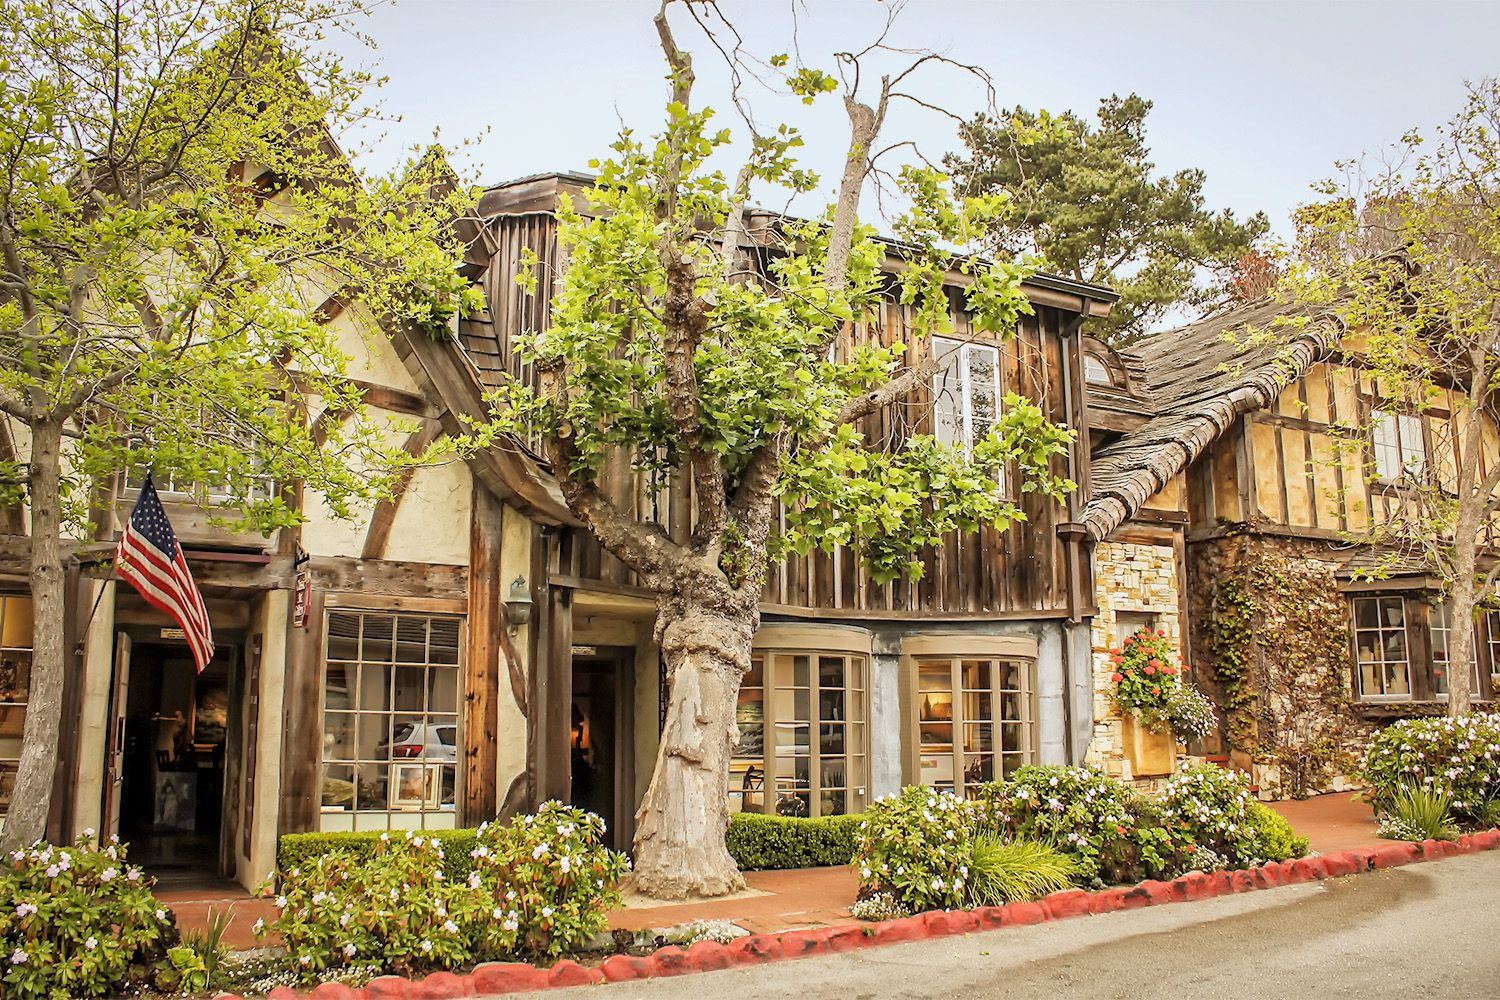 Plan A Carmel California Weekend Getaway Planner